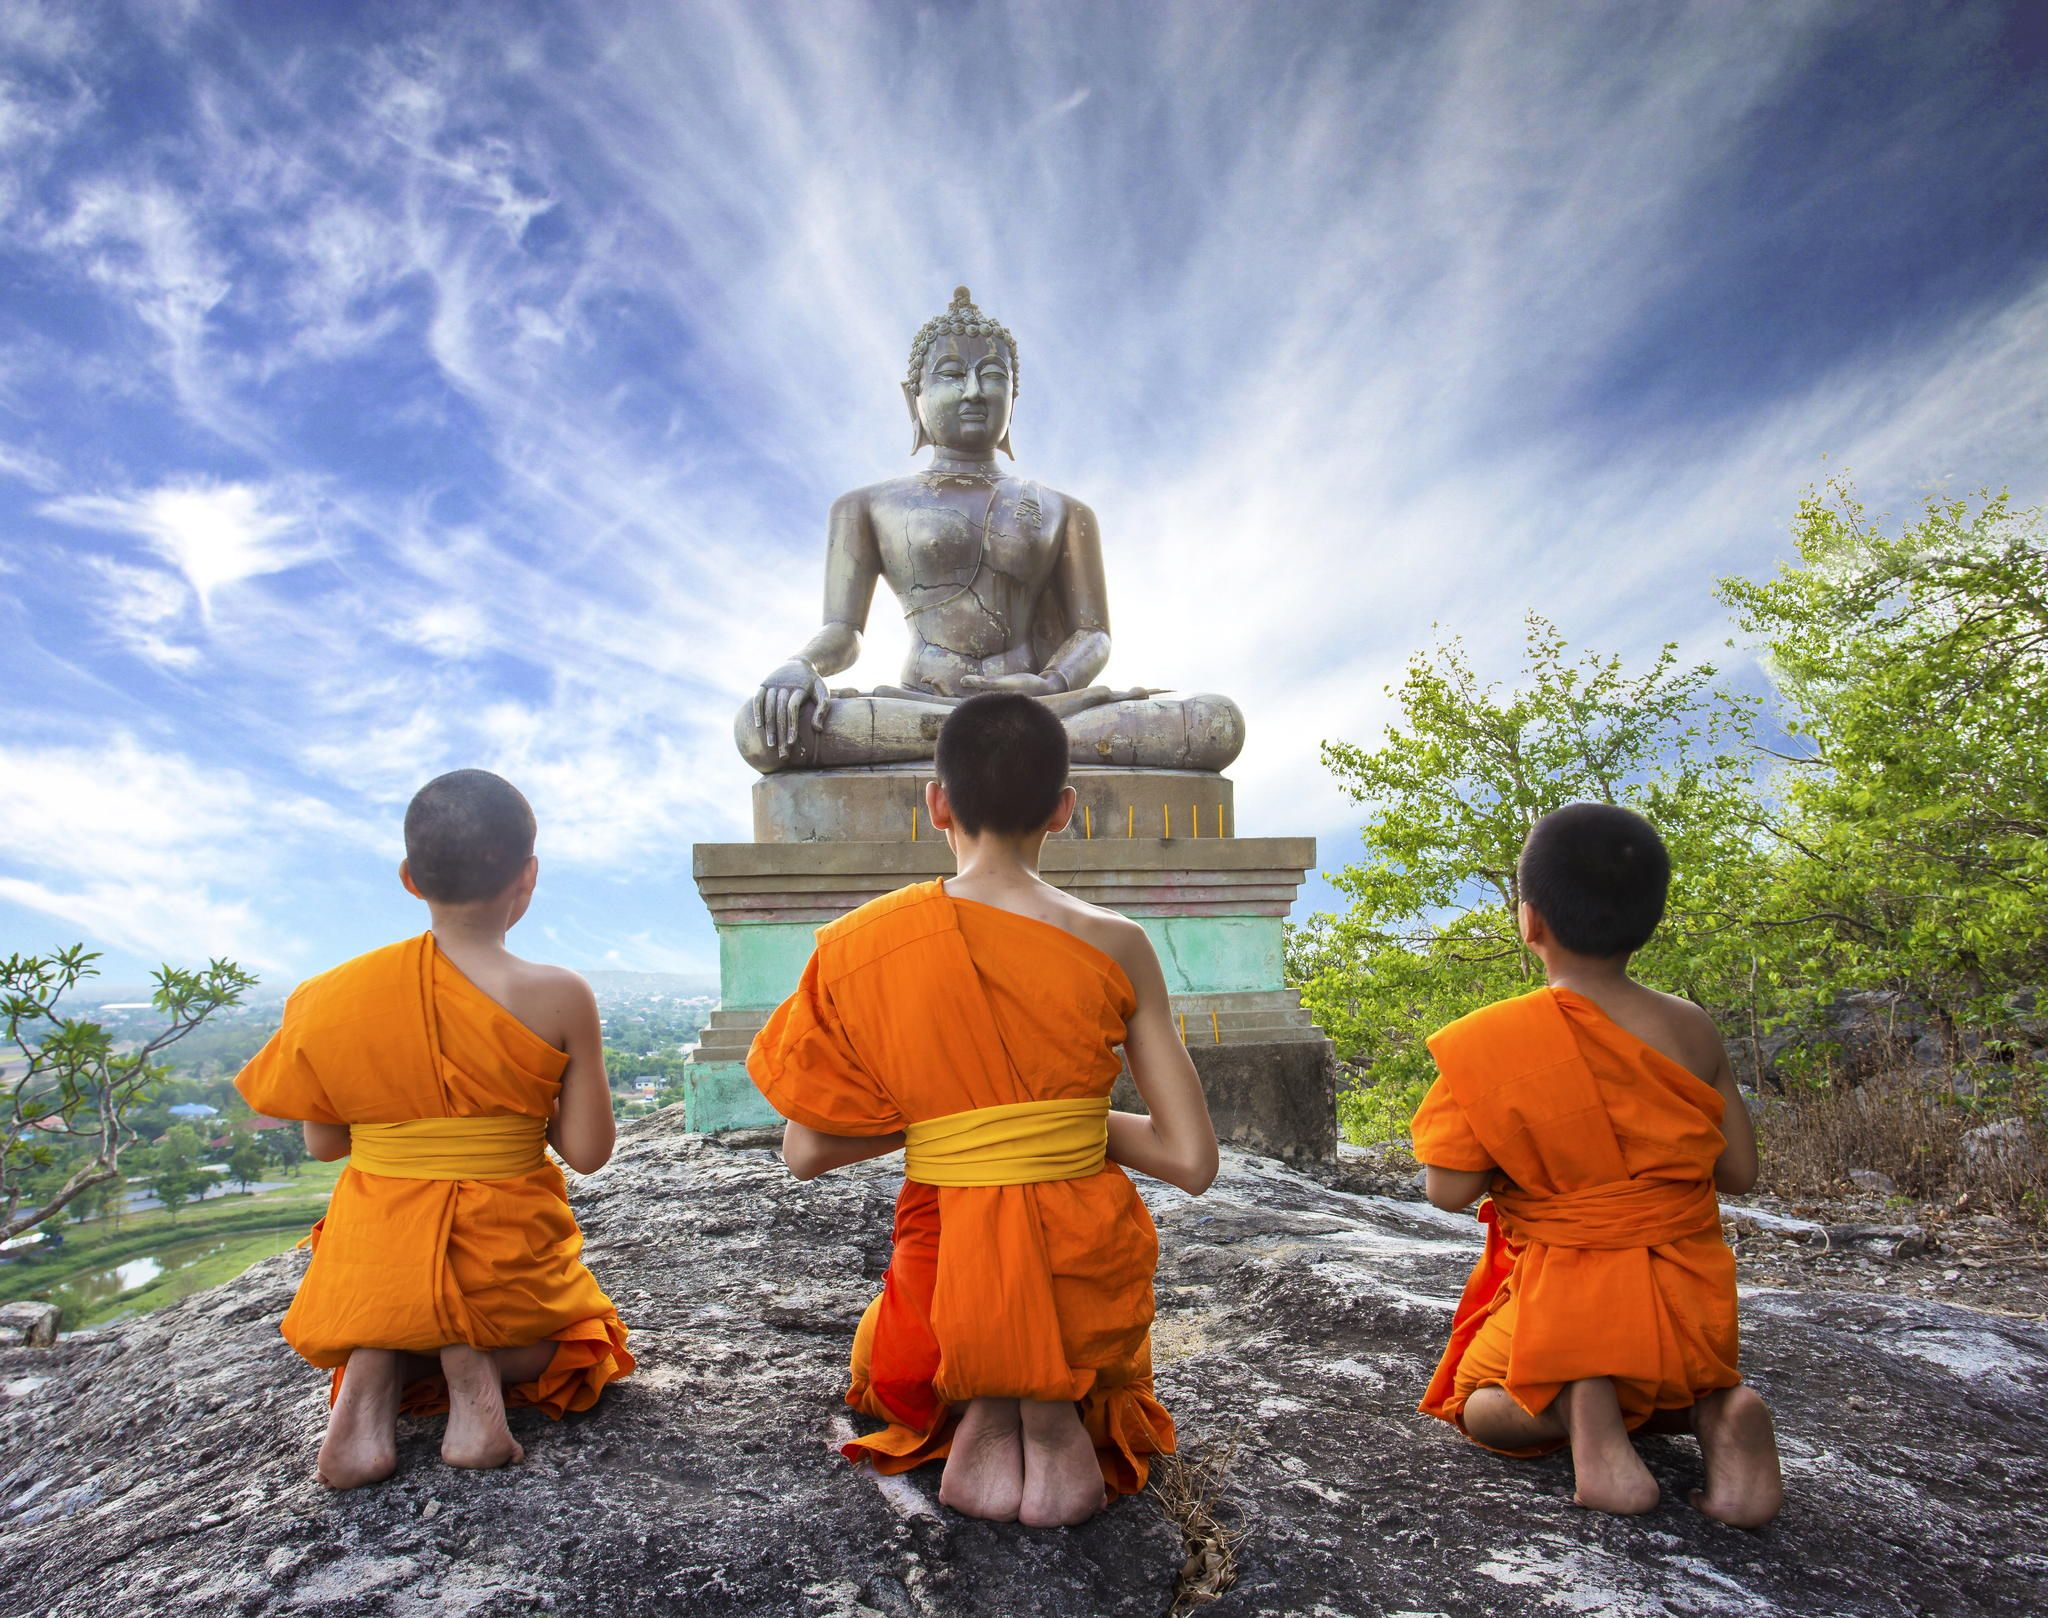 buddhist monks The order of buddhist monks and nuns was founded by gautama buddha during his lifetime between the fifth and fourth centuries bc the buddhist monastic lifestyle grew out of the lifestyle of earlier sects of wandering ascetics, some of whom the buddha had studied under.